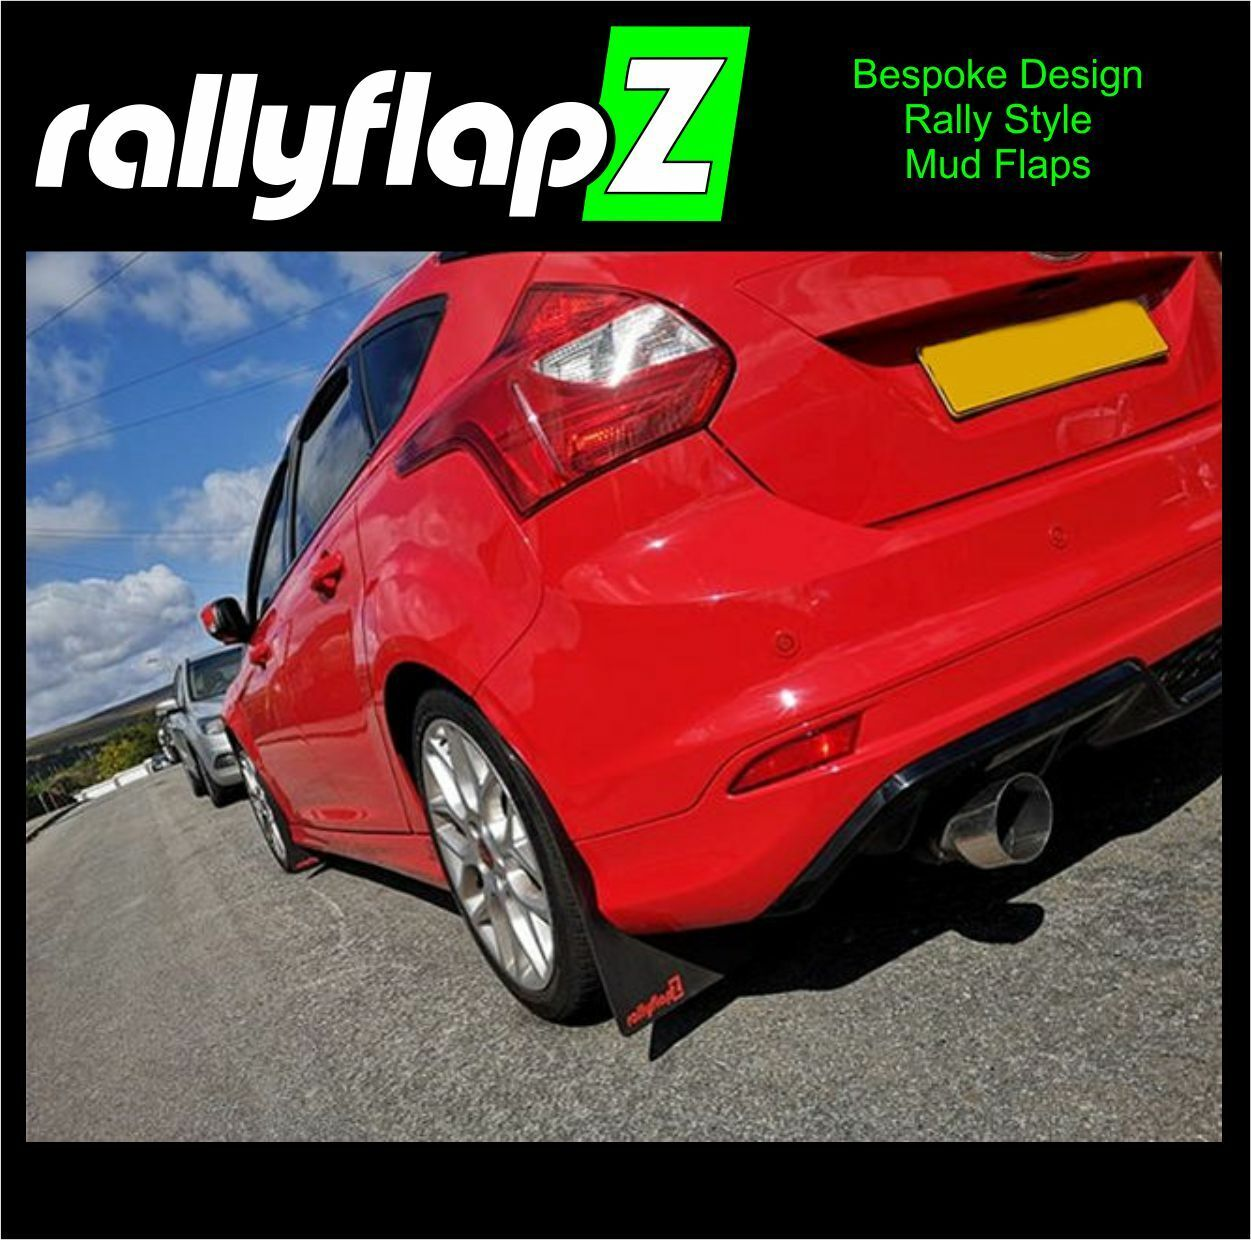 Spares fitting Kit for FORD FOCUS MK3 ST250 Inc Rear Bracket x 1 and fixings